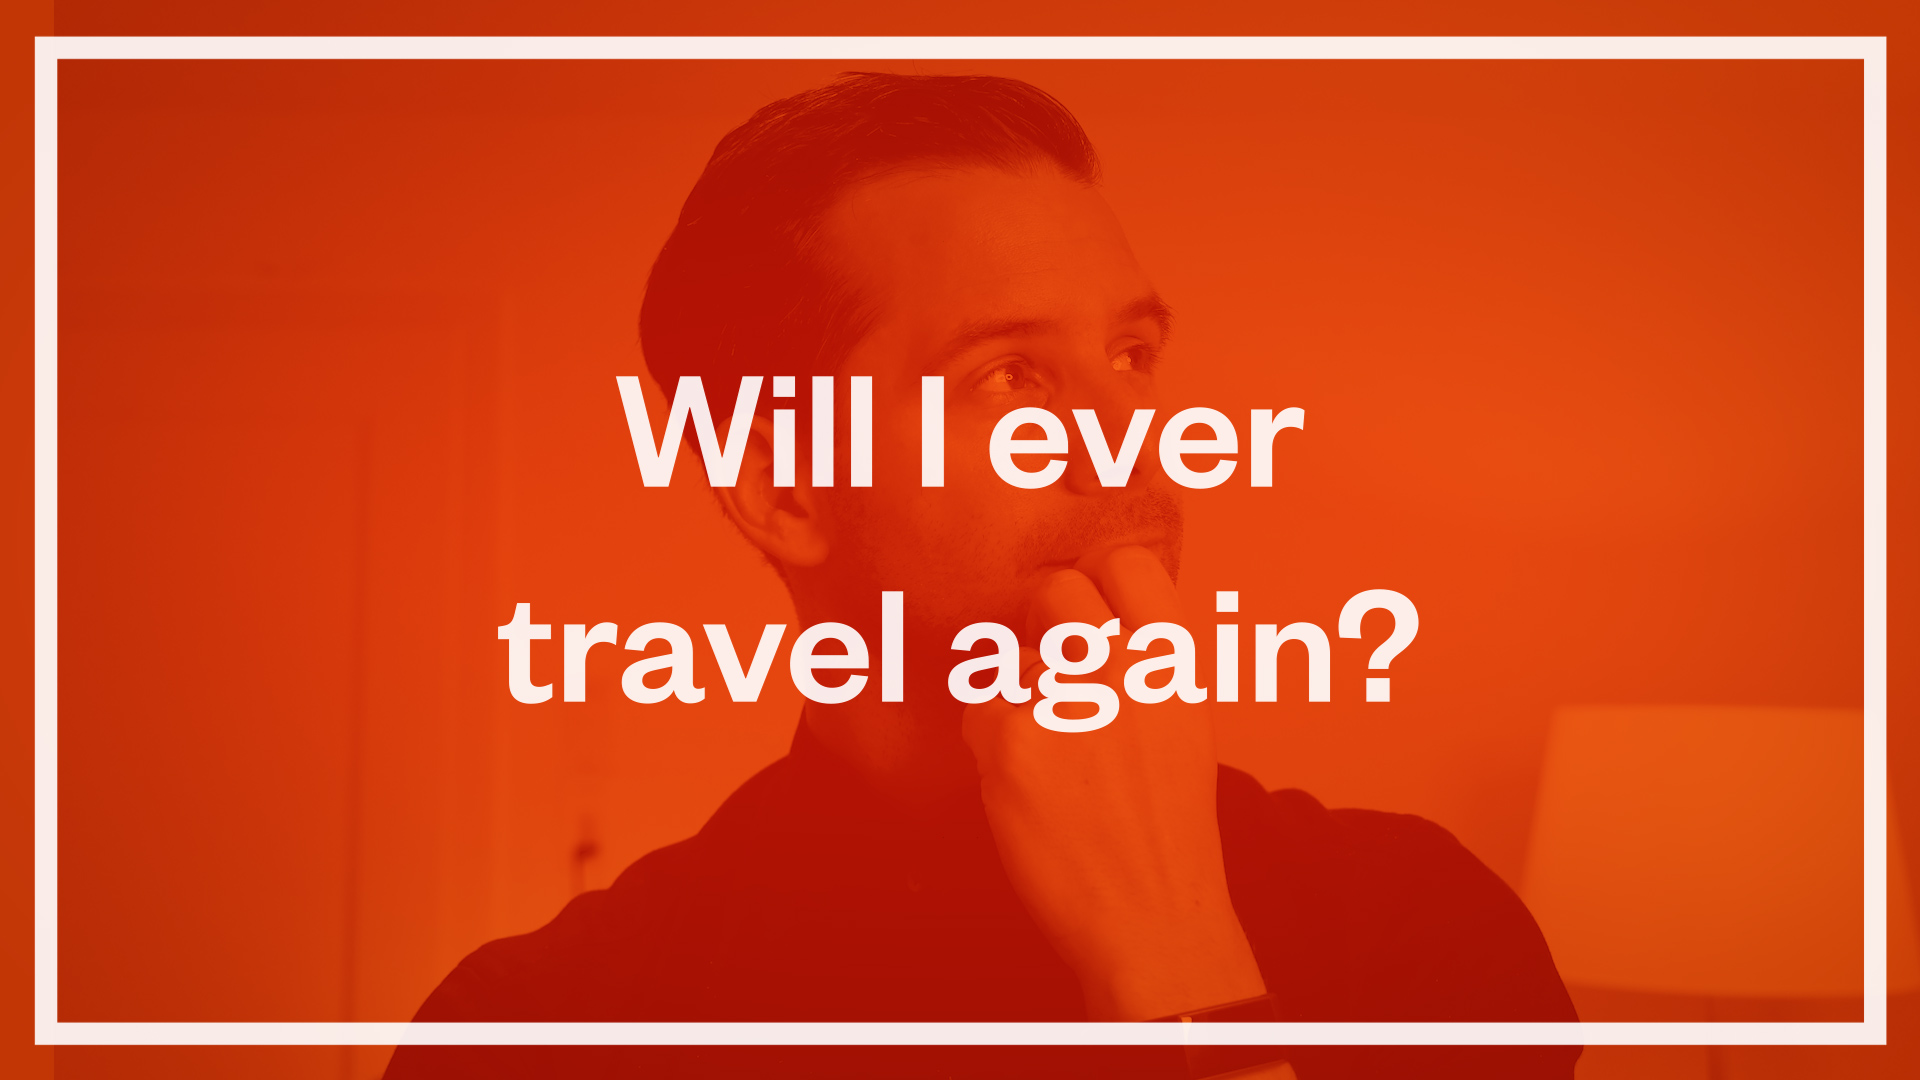 Will I ever travel again?